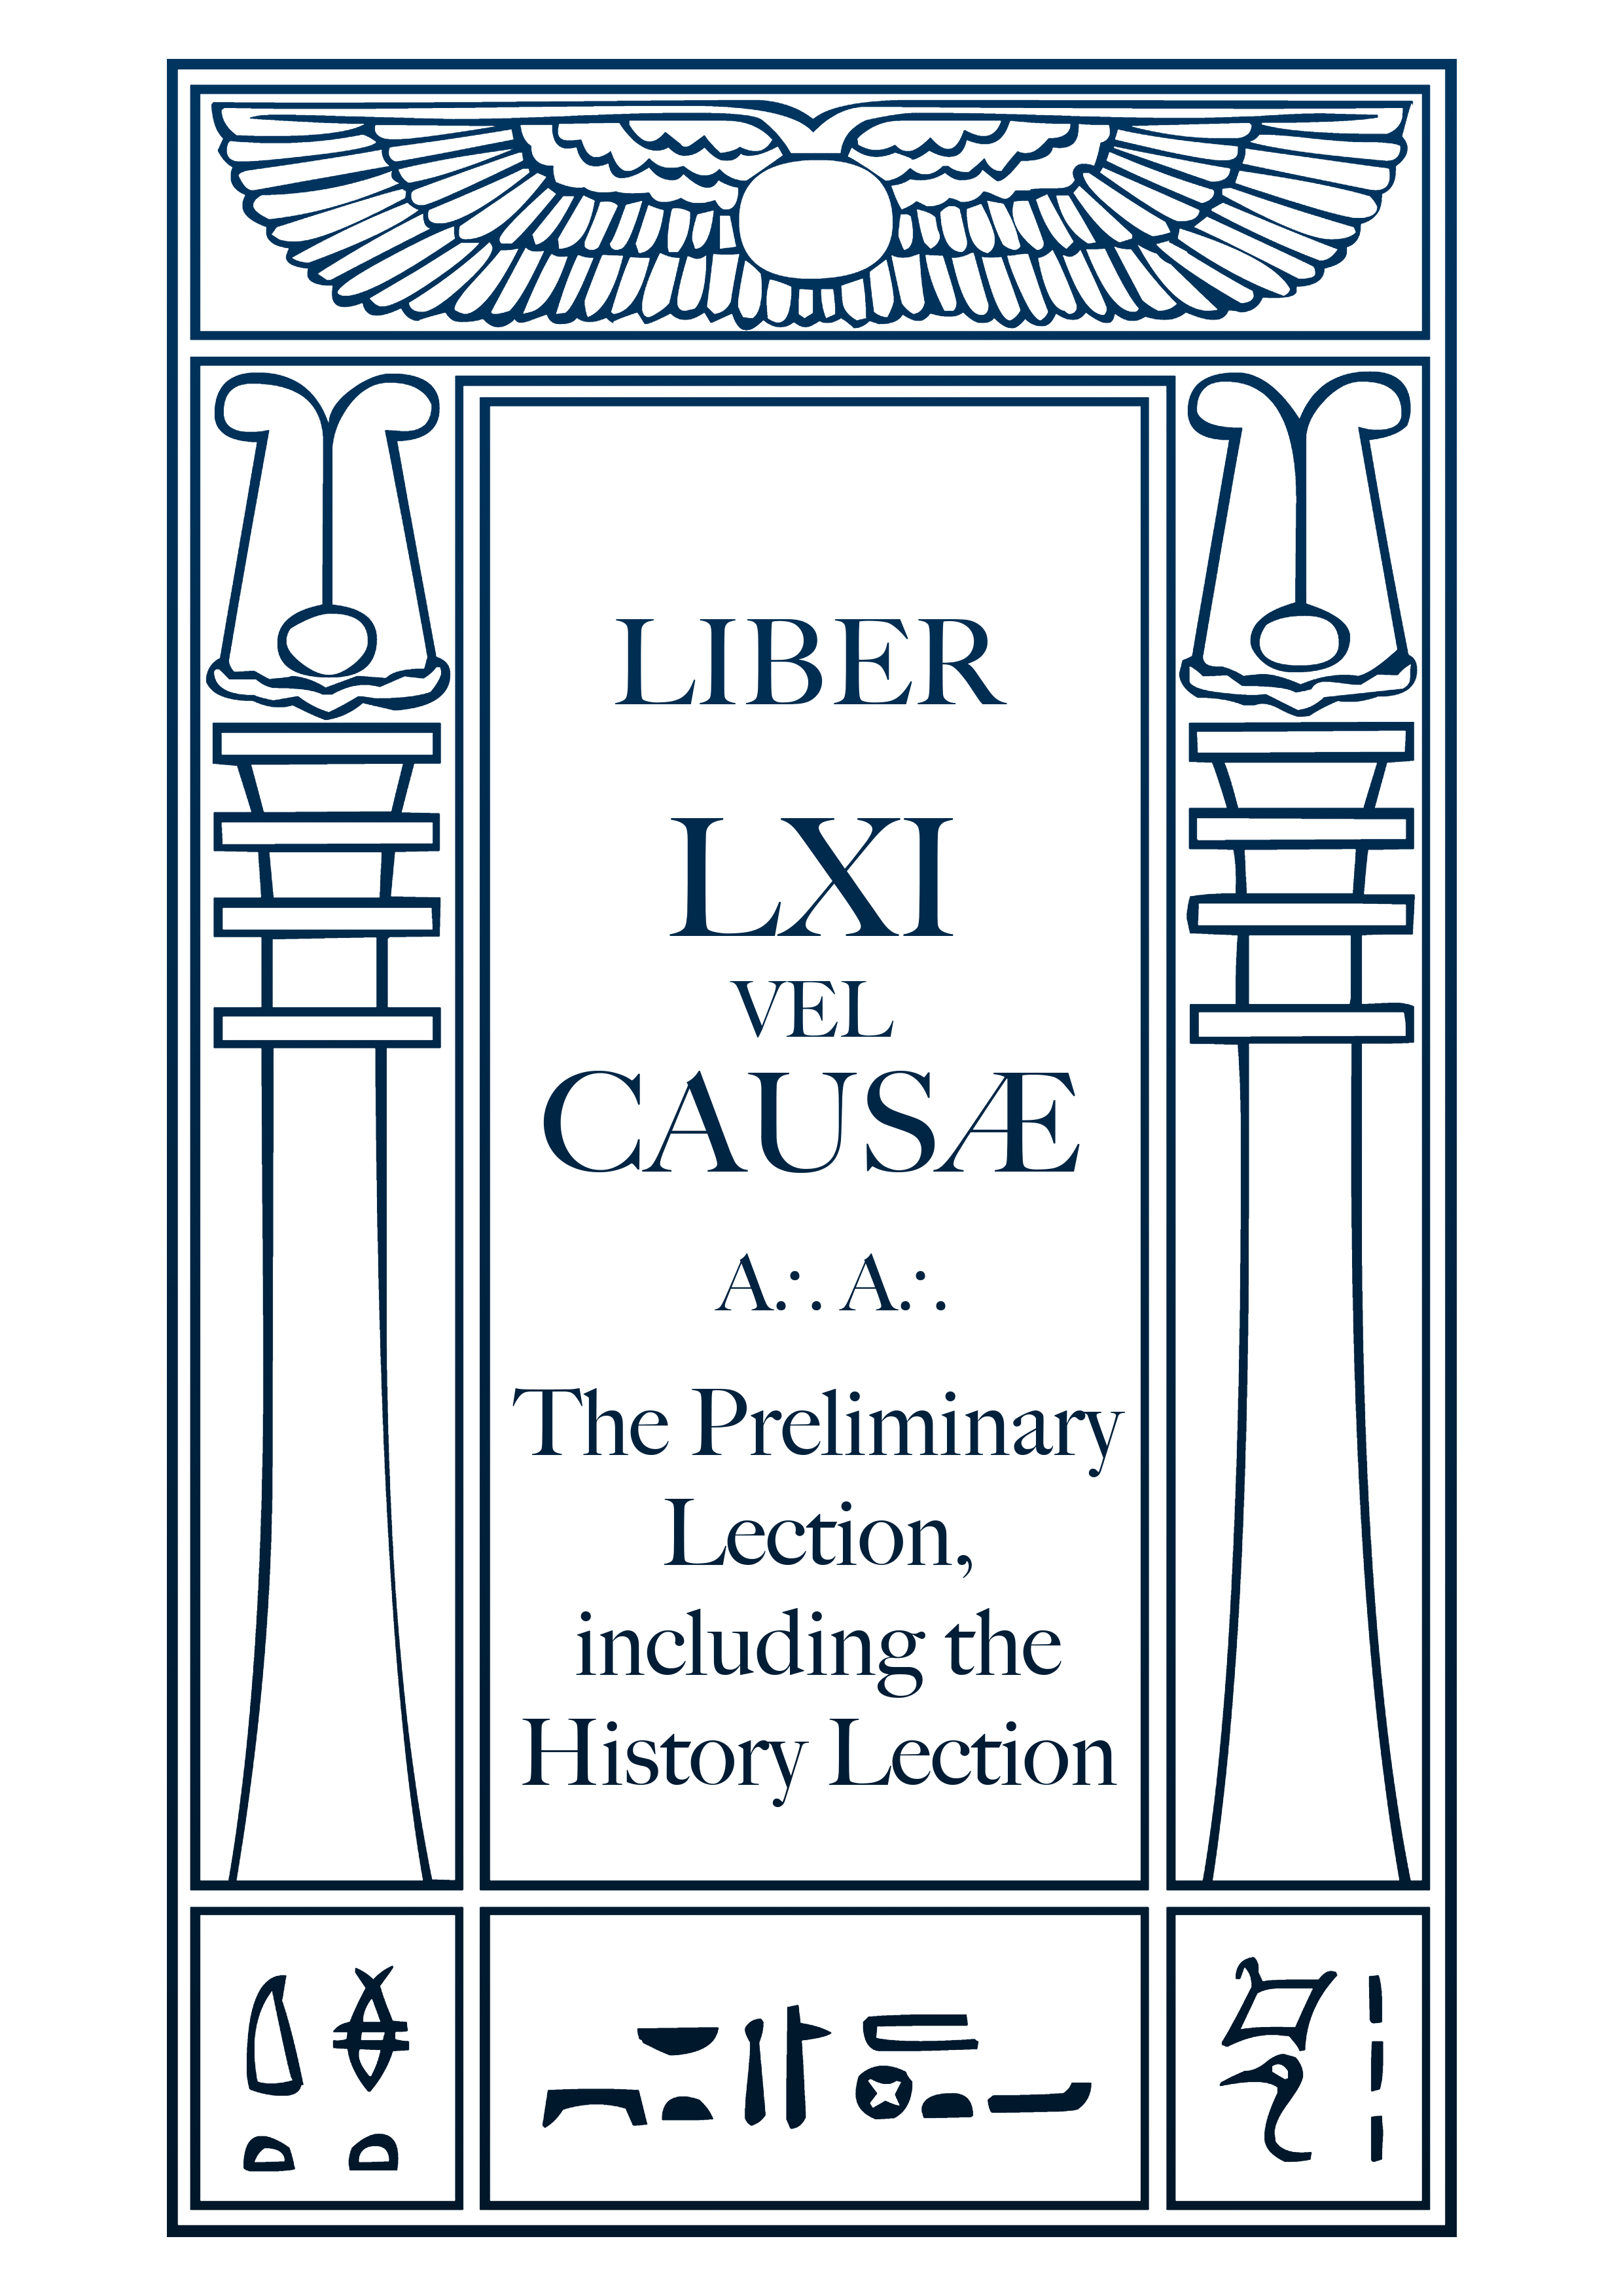 Liber LXI – The preliminary lection, including the history lection